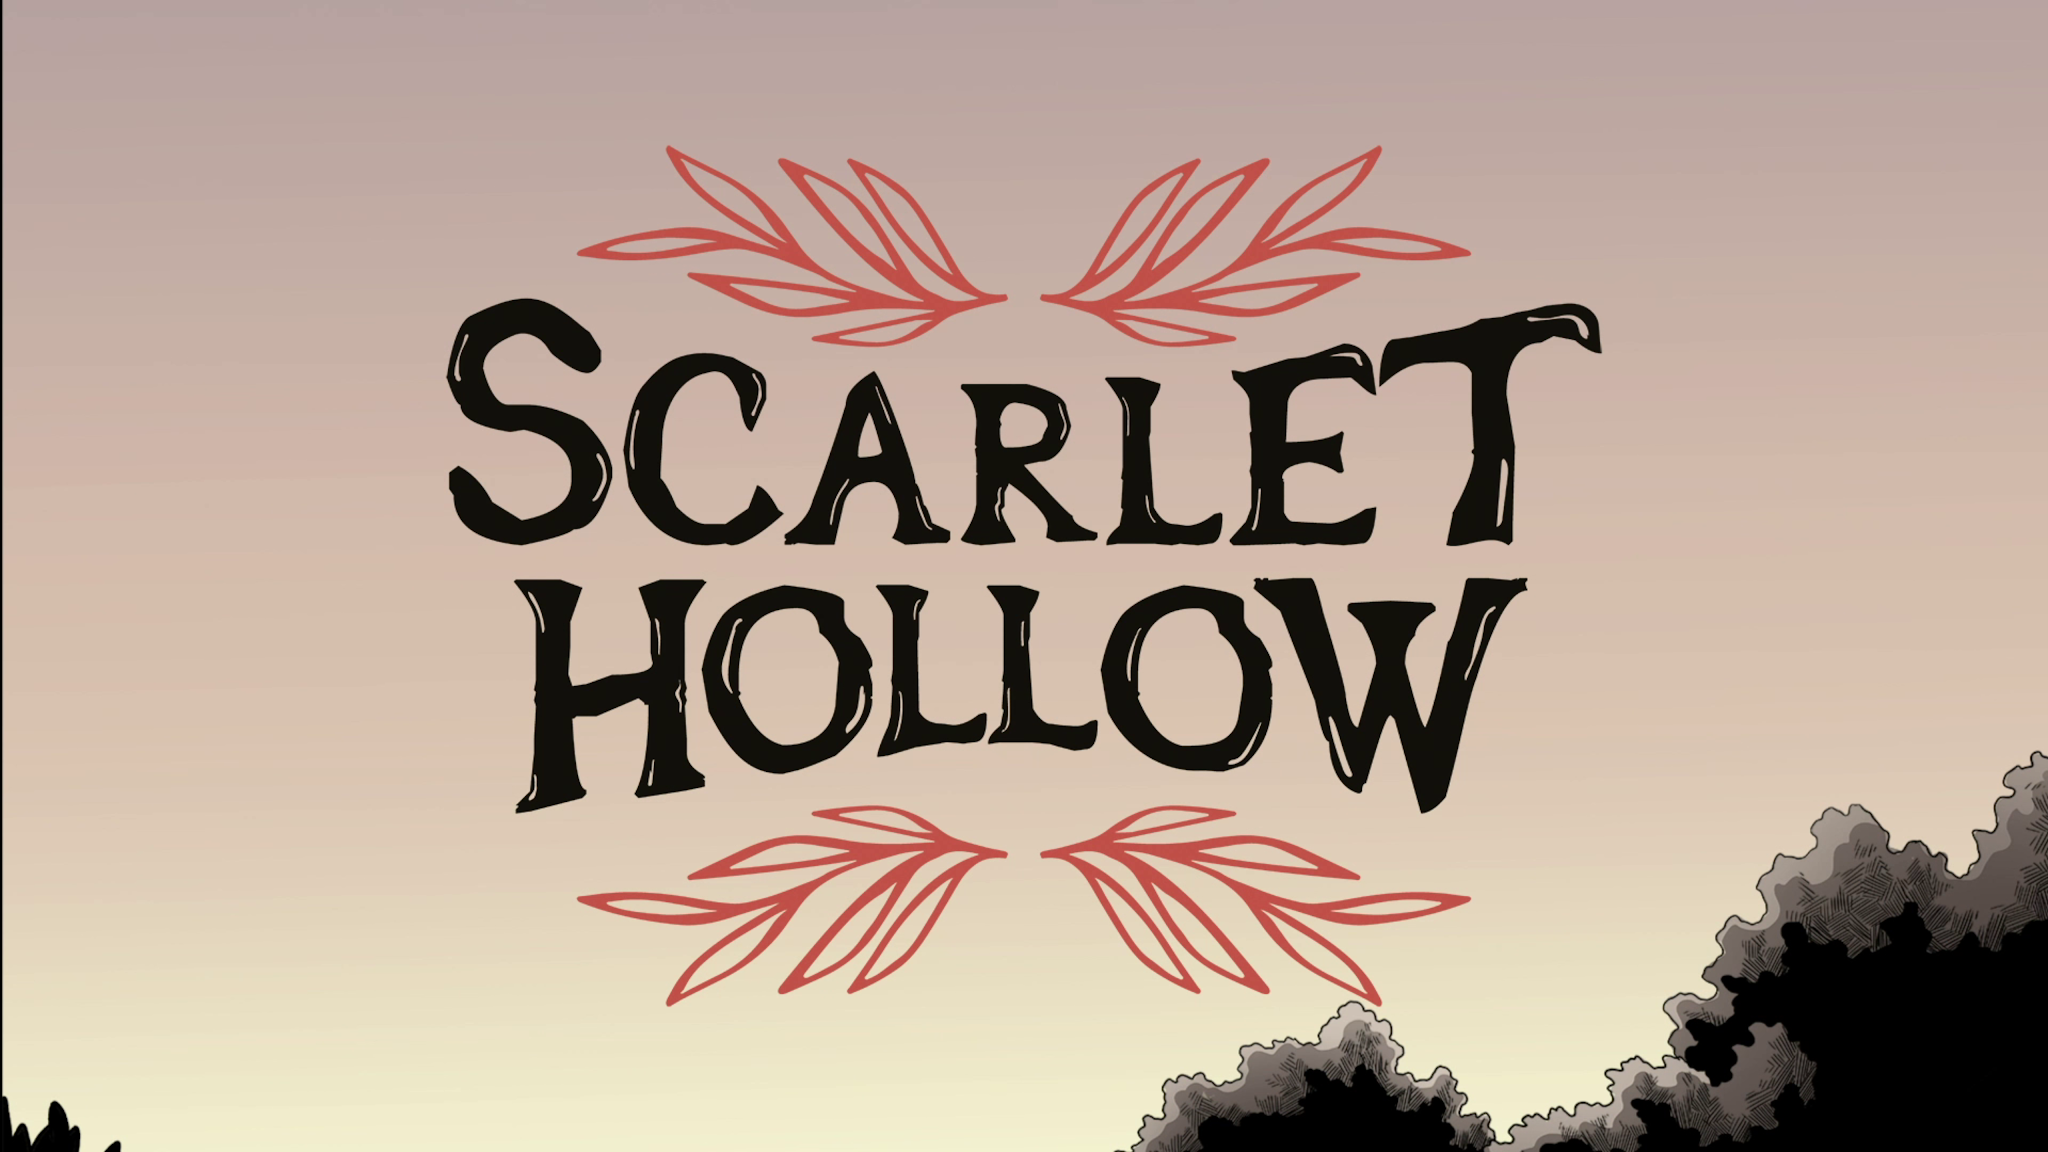 Scarlet Hollow opening title.